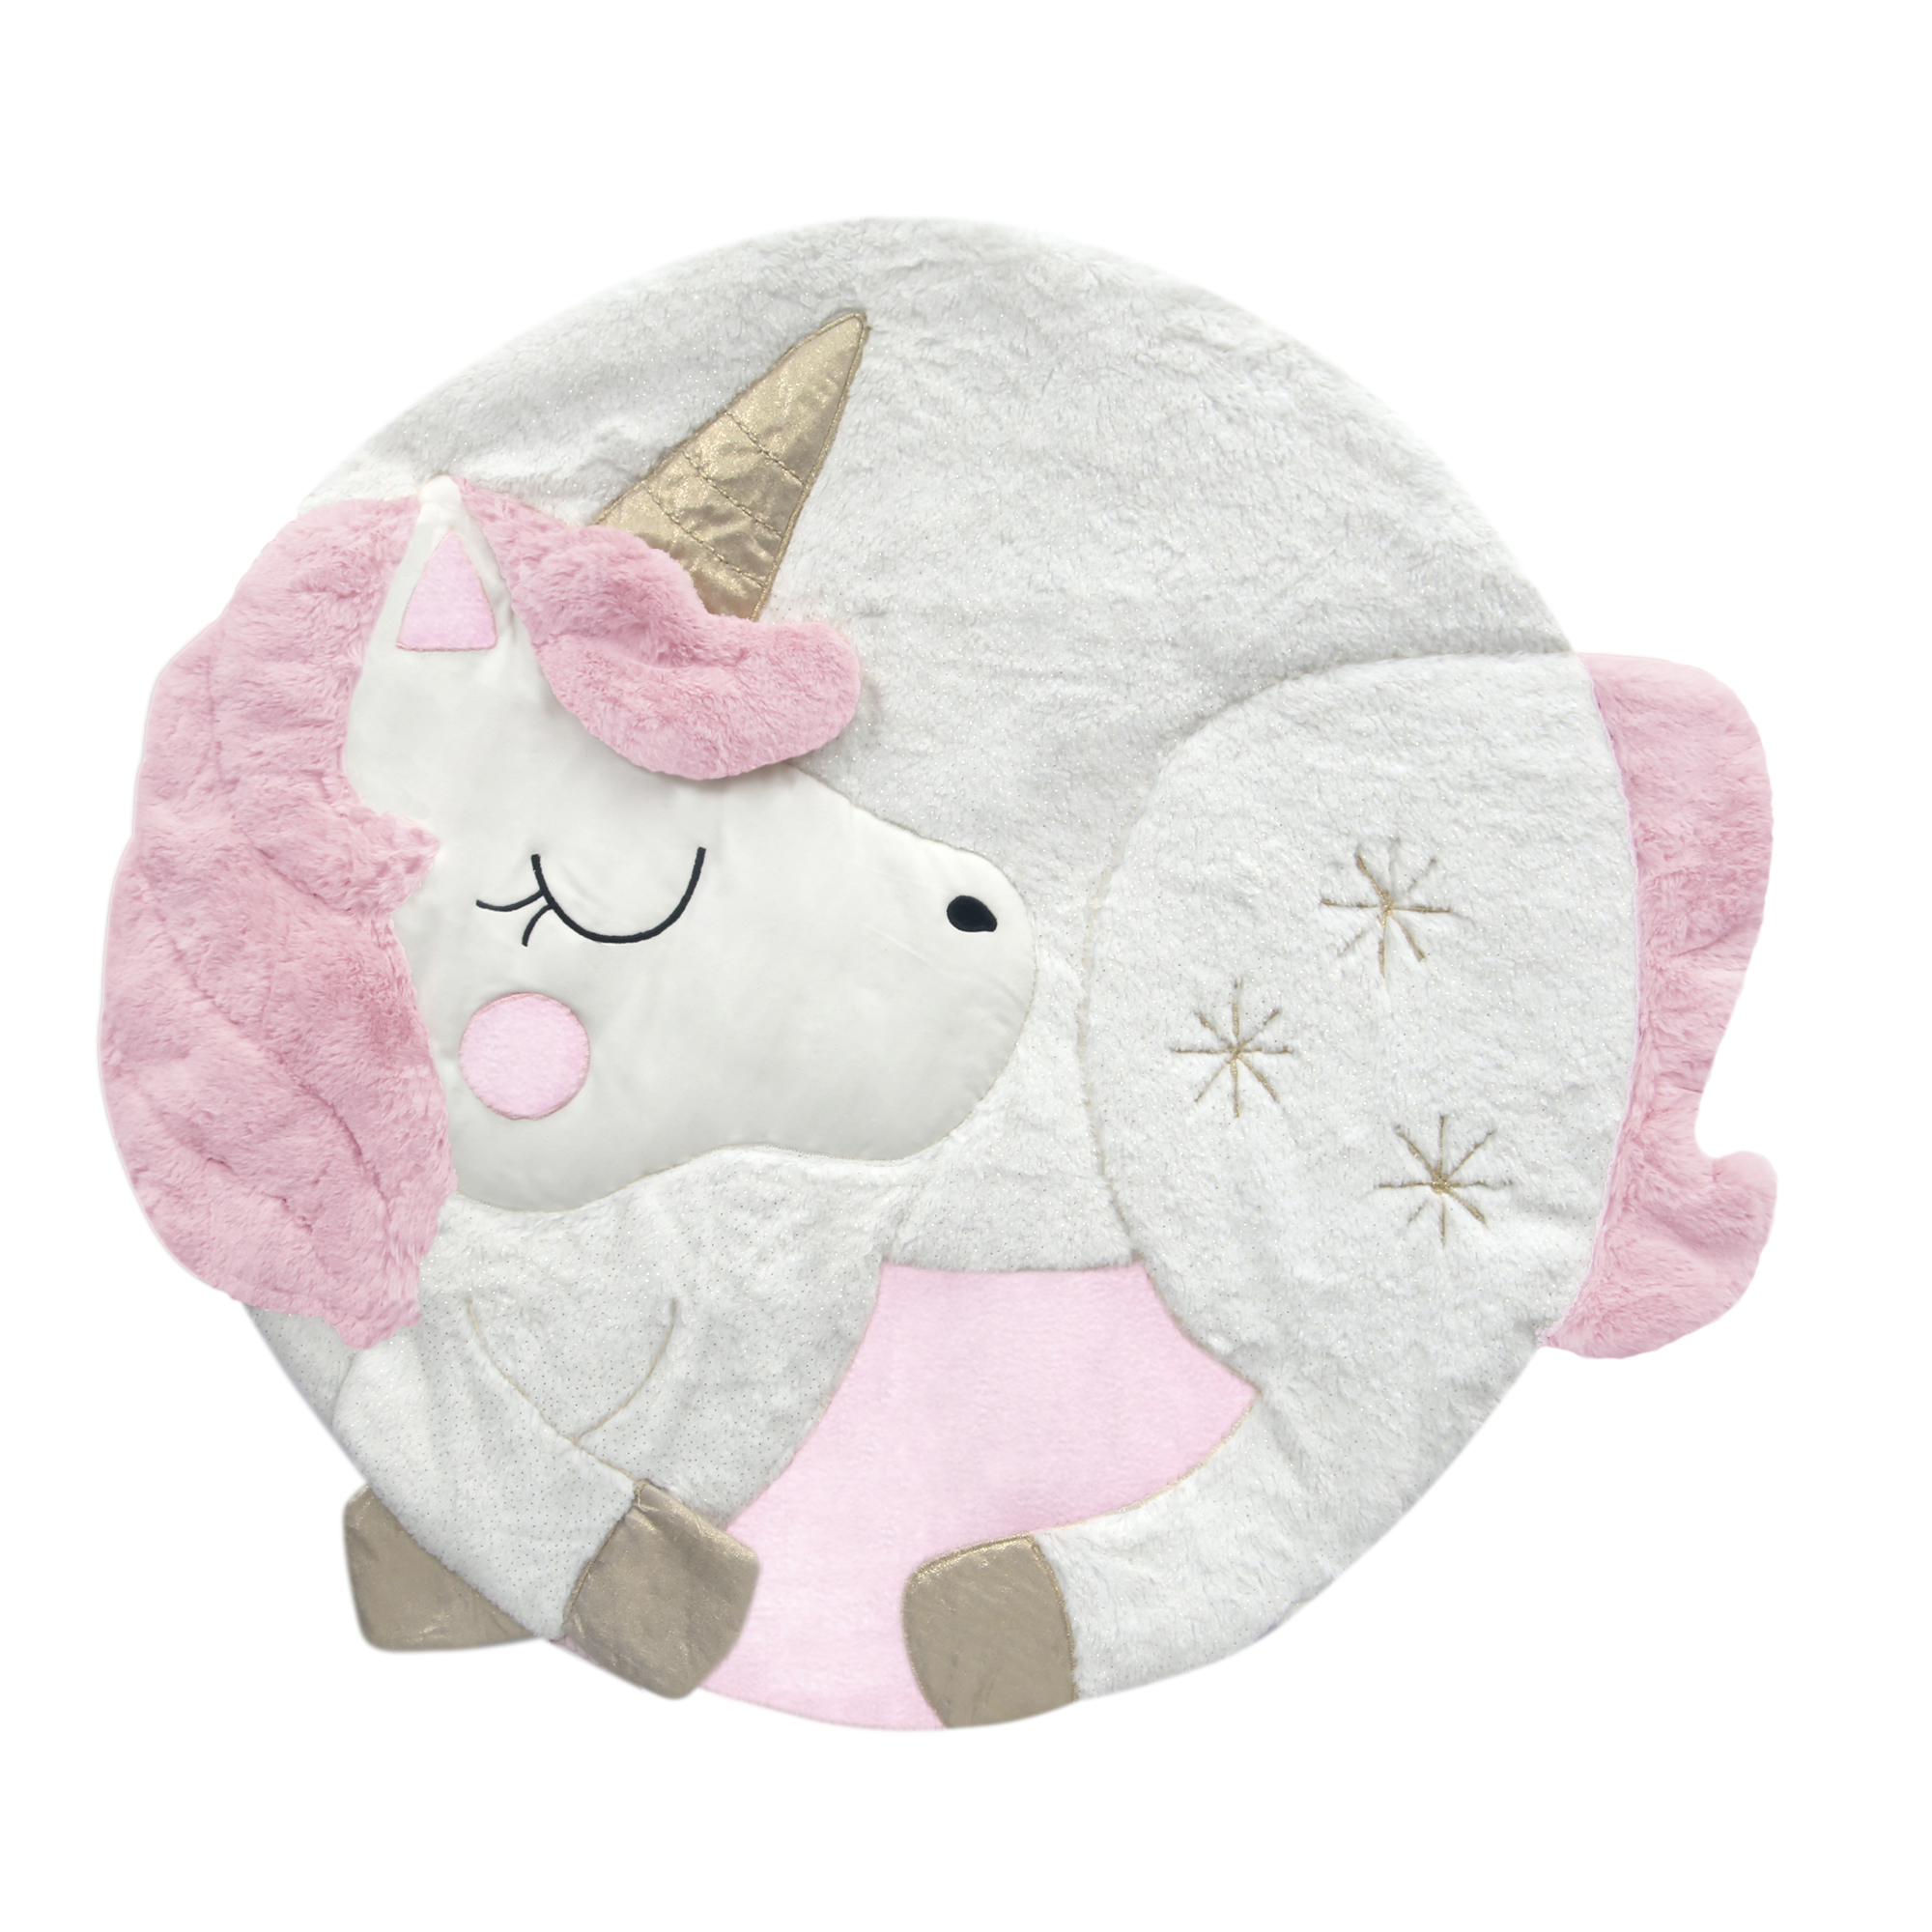 Lambs & Ivy Unicorn White/Pink Interactive Baby Play Mat